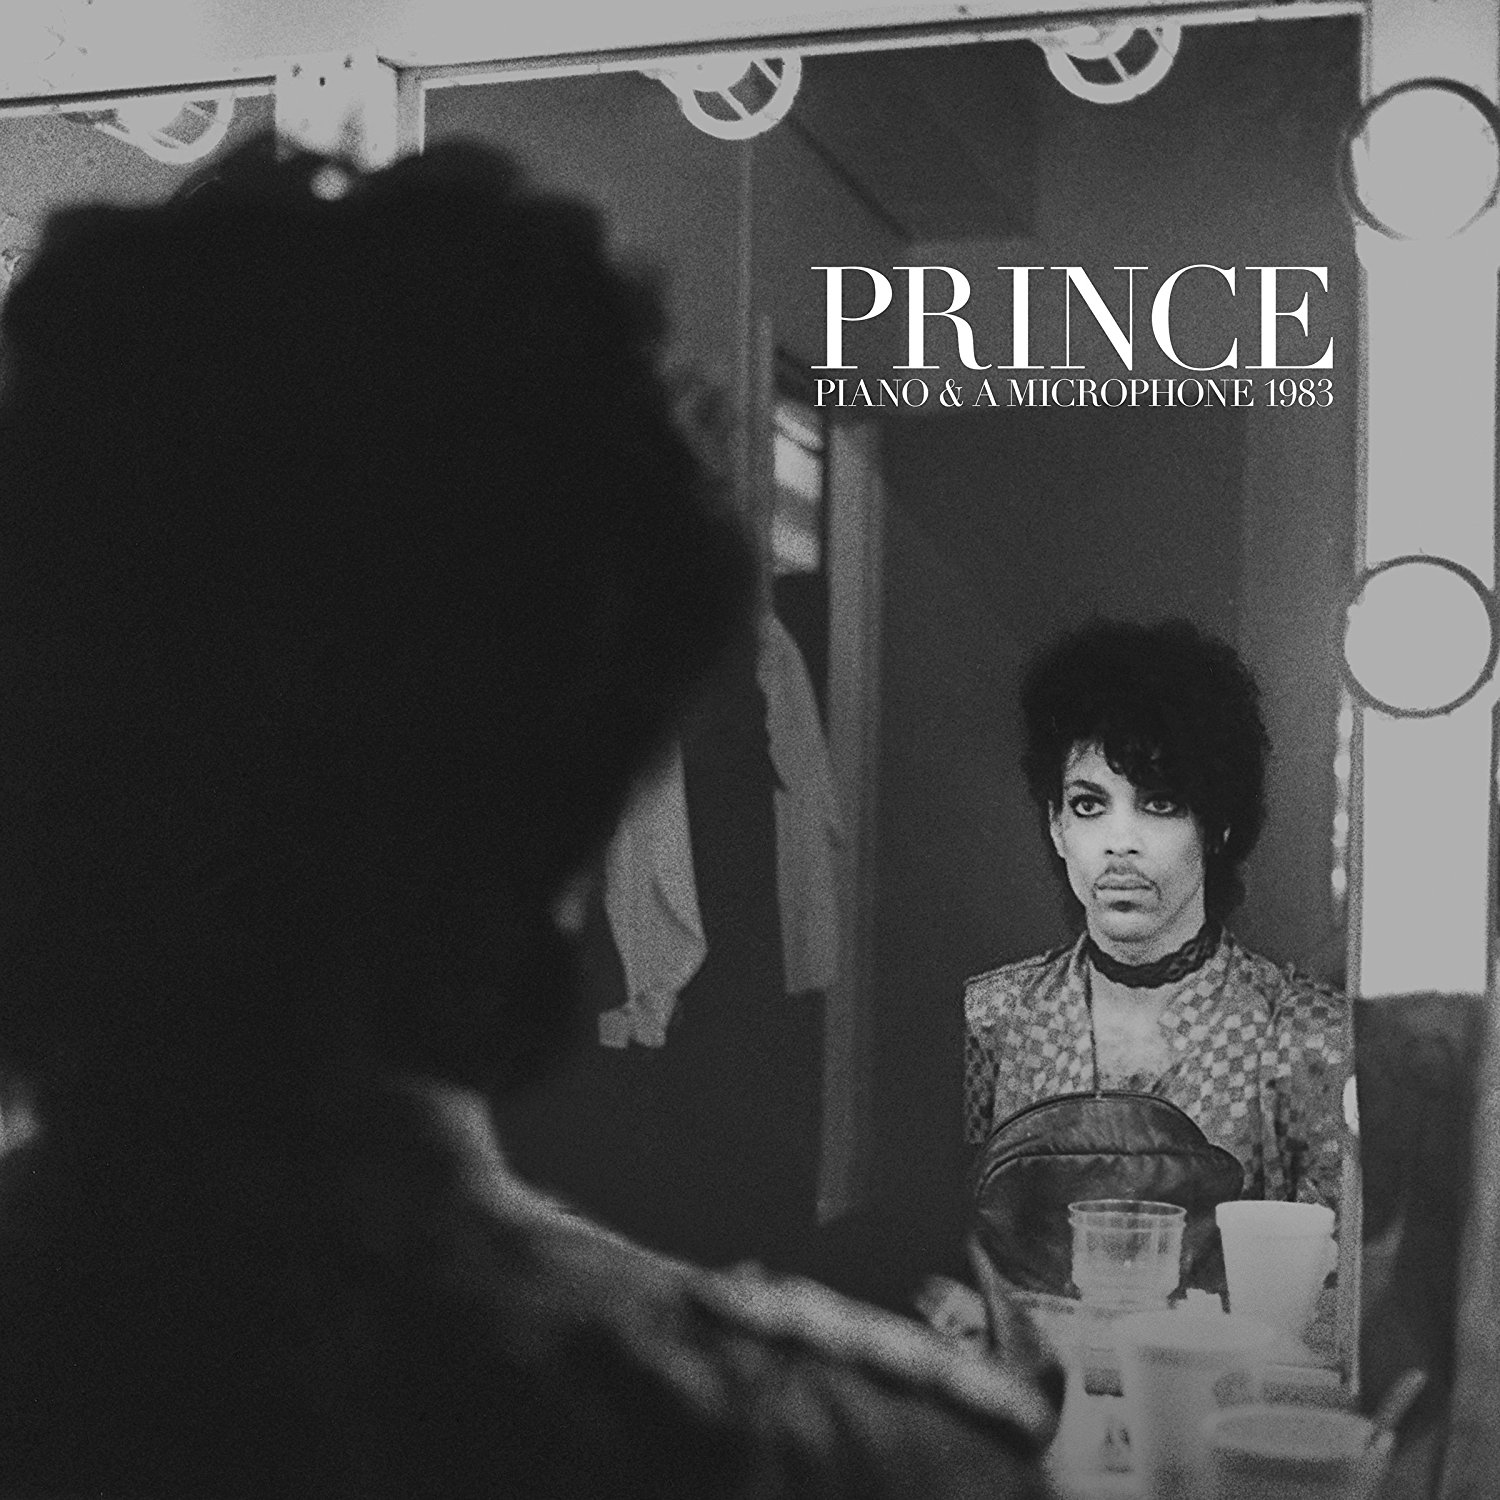 PRINCE - PIANO & A MICROPHONE 1983 (2 LP) (LP)